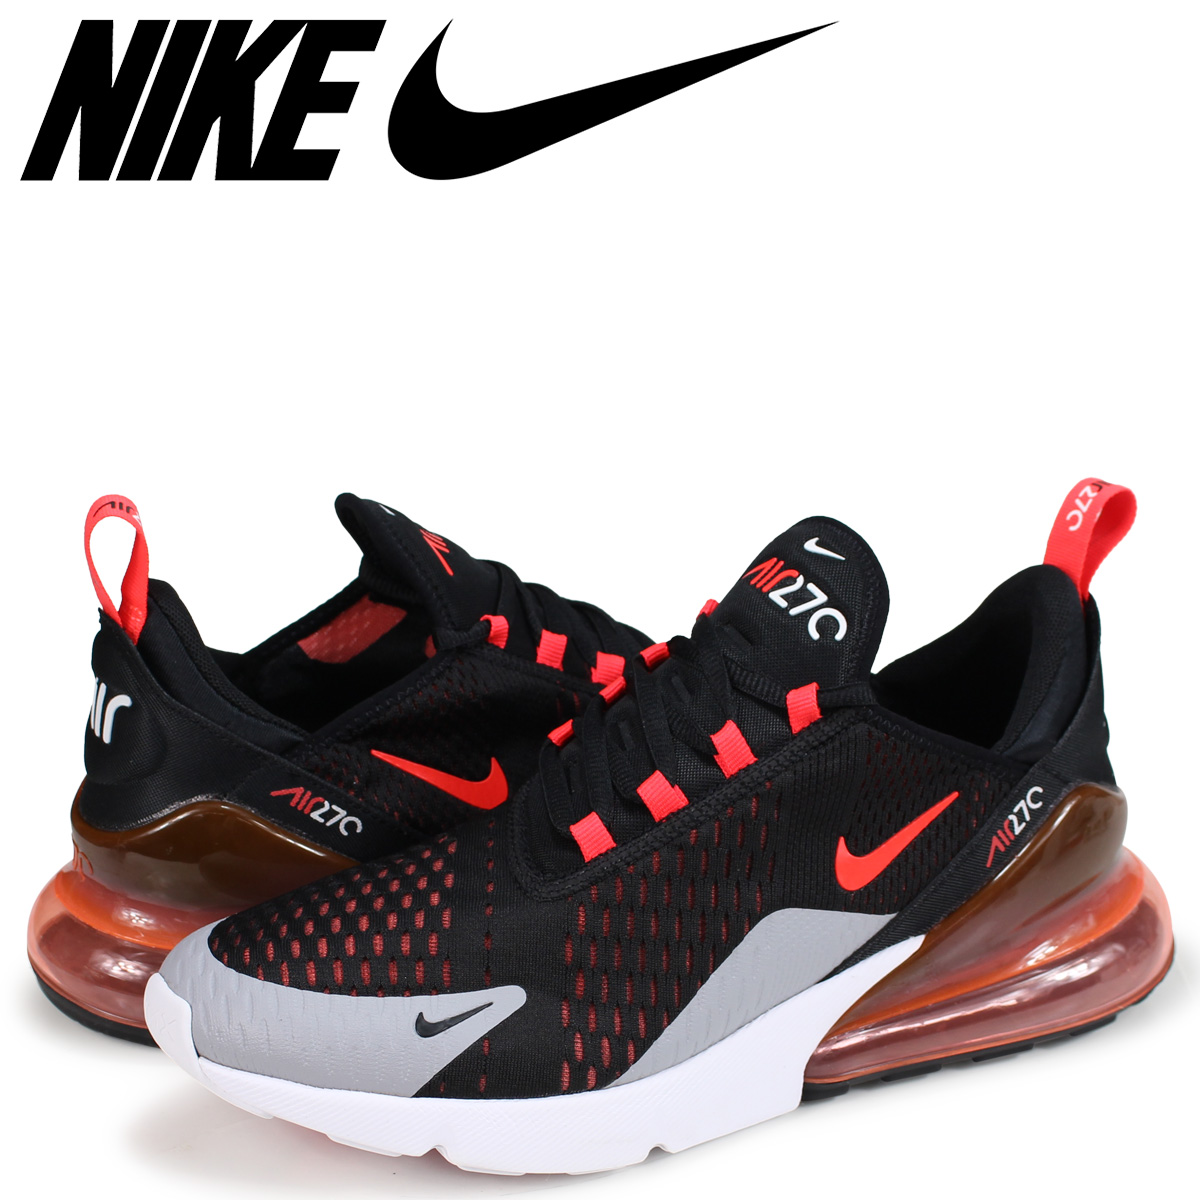 Nike NIKE Air Max 270 sneakers men AIR MAX 270 AH8050-015 black  load  planned Shinnyu load in reservation product 10 3 containing  611b345beb17